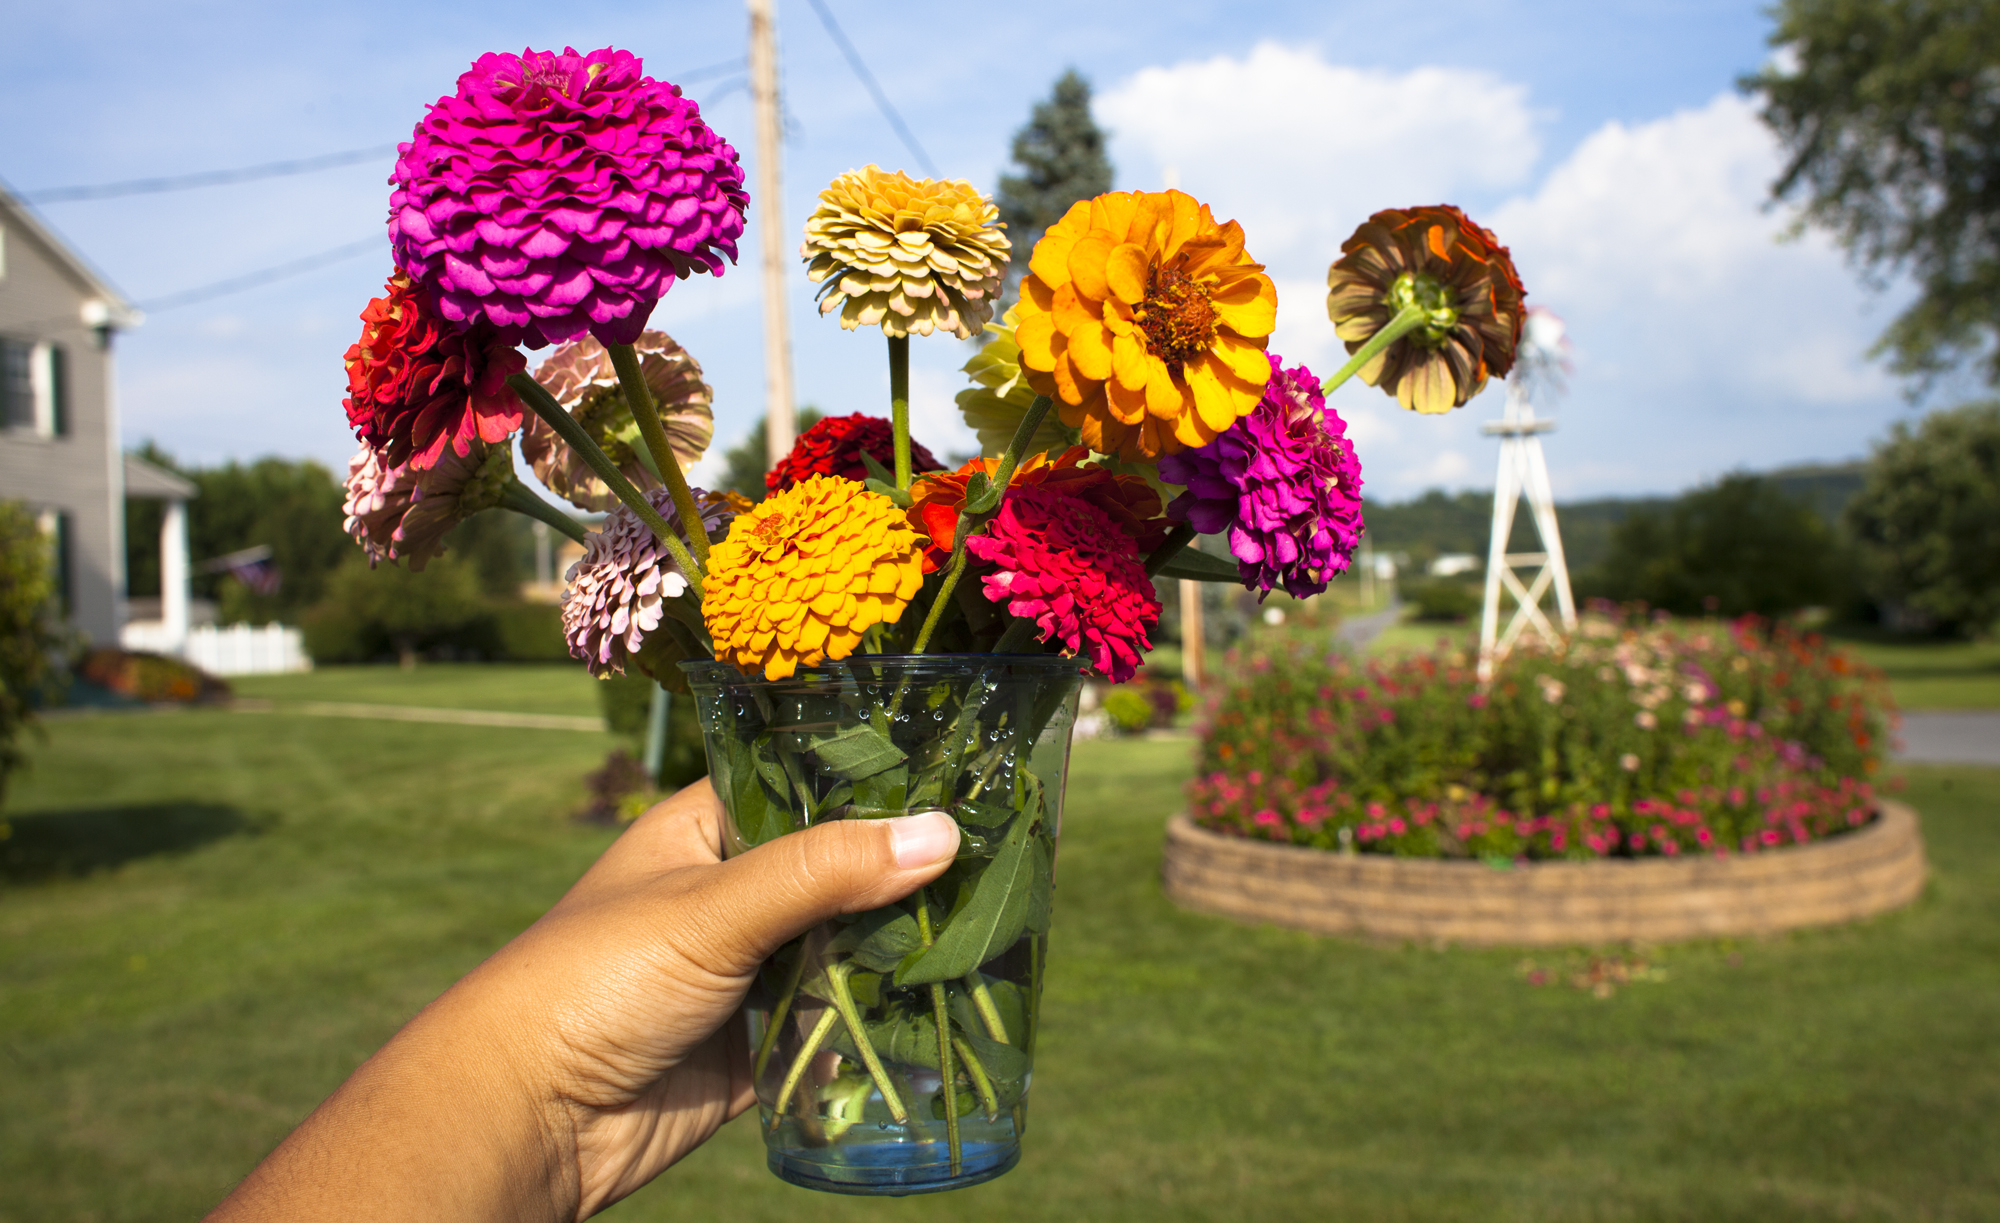 Freshly picked zinnias from Marie Rudy's garden in Mount Wolf in a plastic cup, Thursday, Aug. 22, 2013.